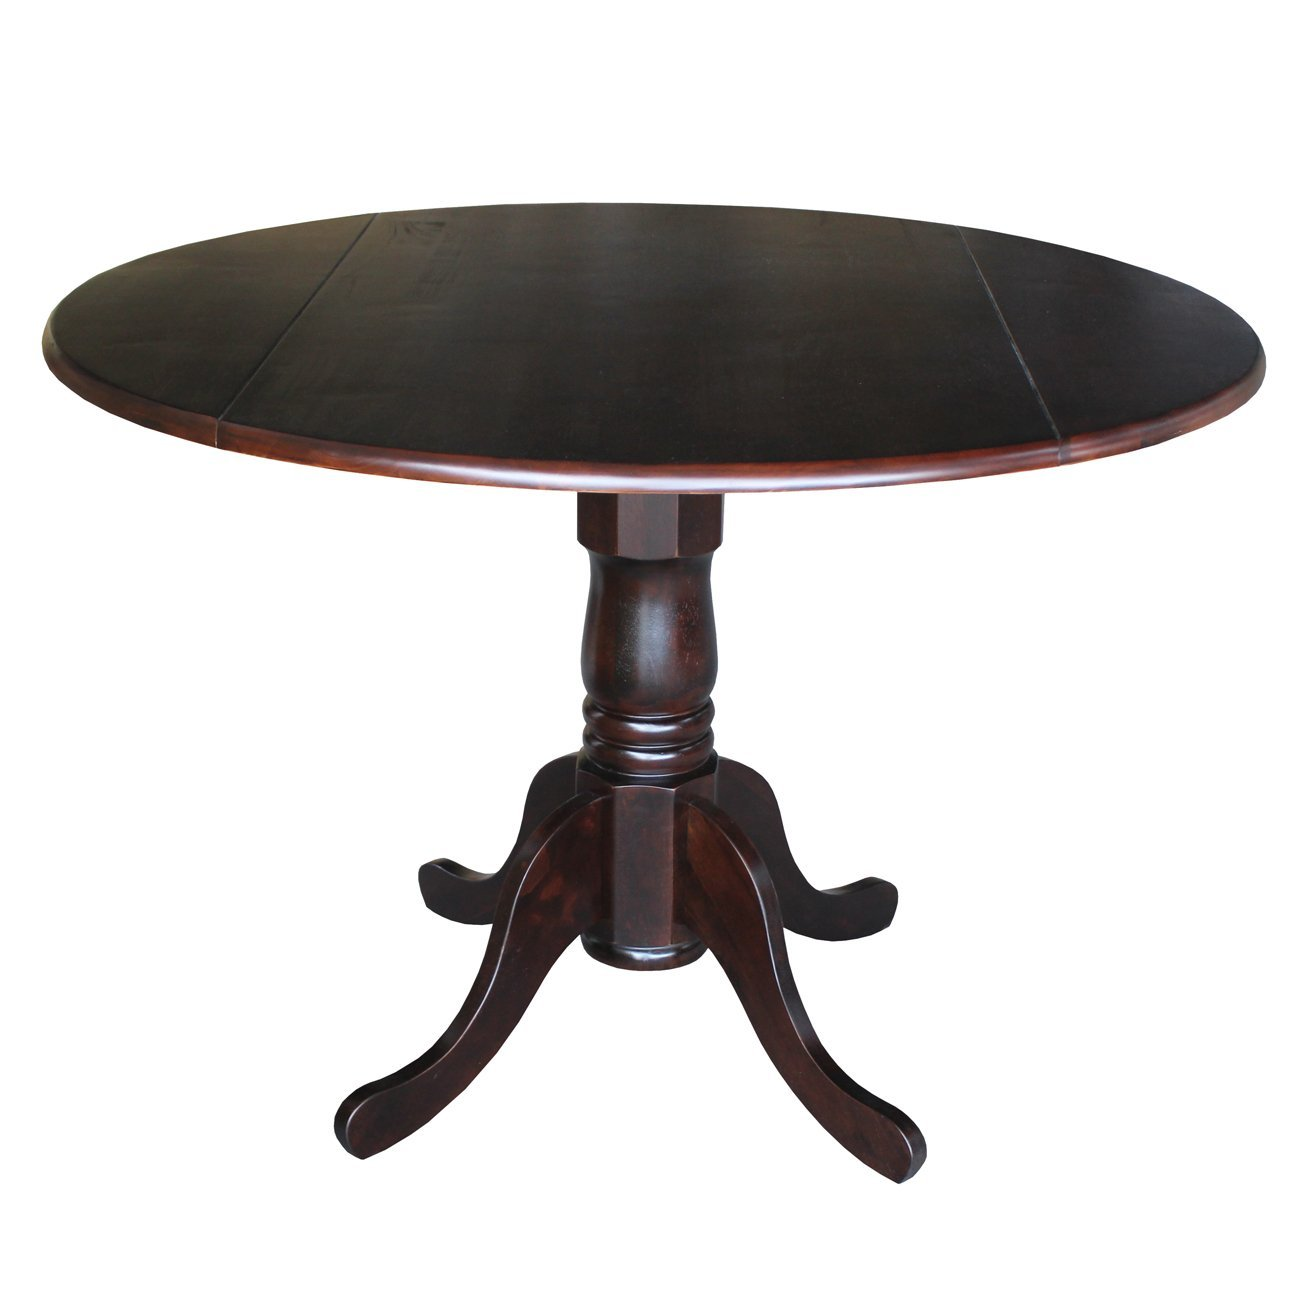 furniture awesome round pedestal table for cozy dining room decor oak large drop leaf accent inch small target marble tray tablecloth glass lamp modern design nursery side home